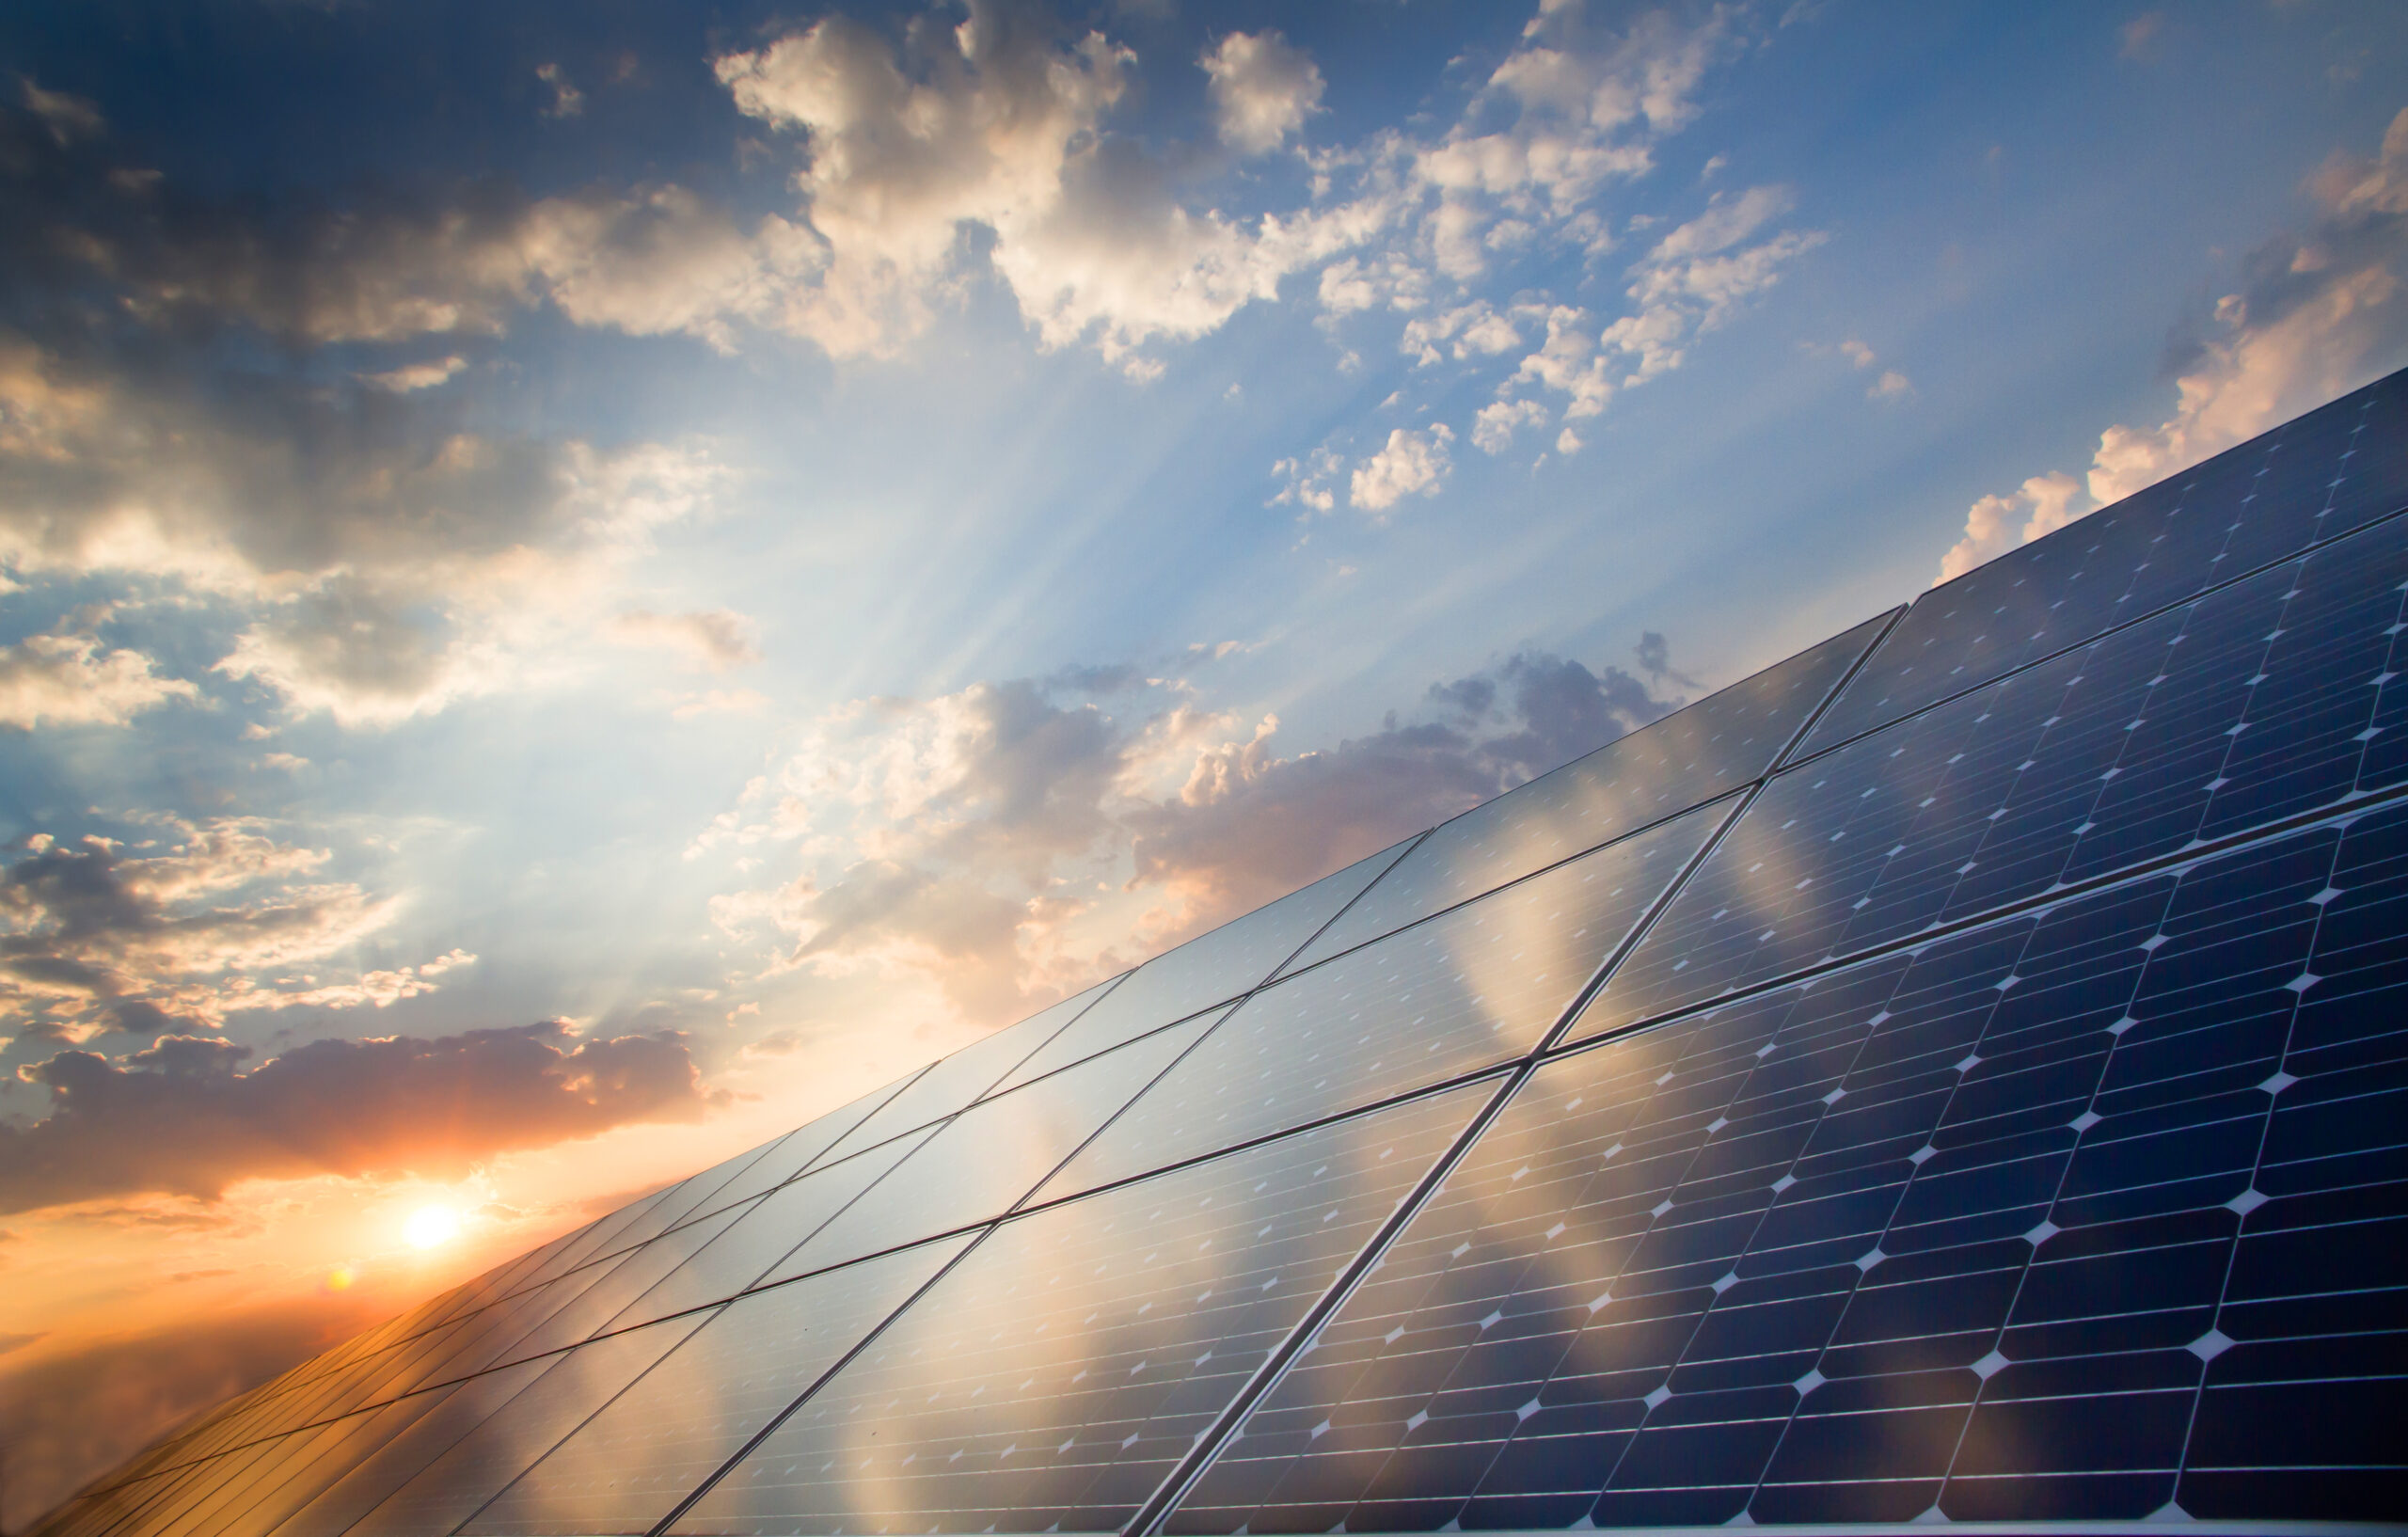 Why is the use of green energy so important?